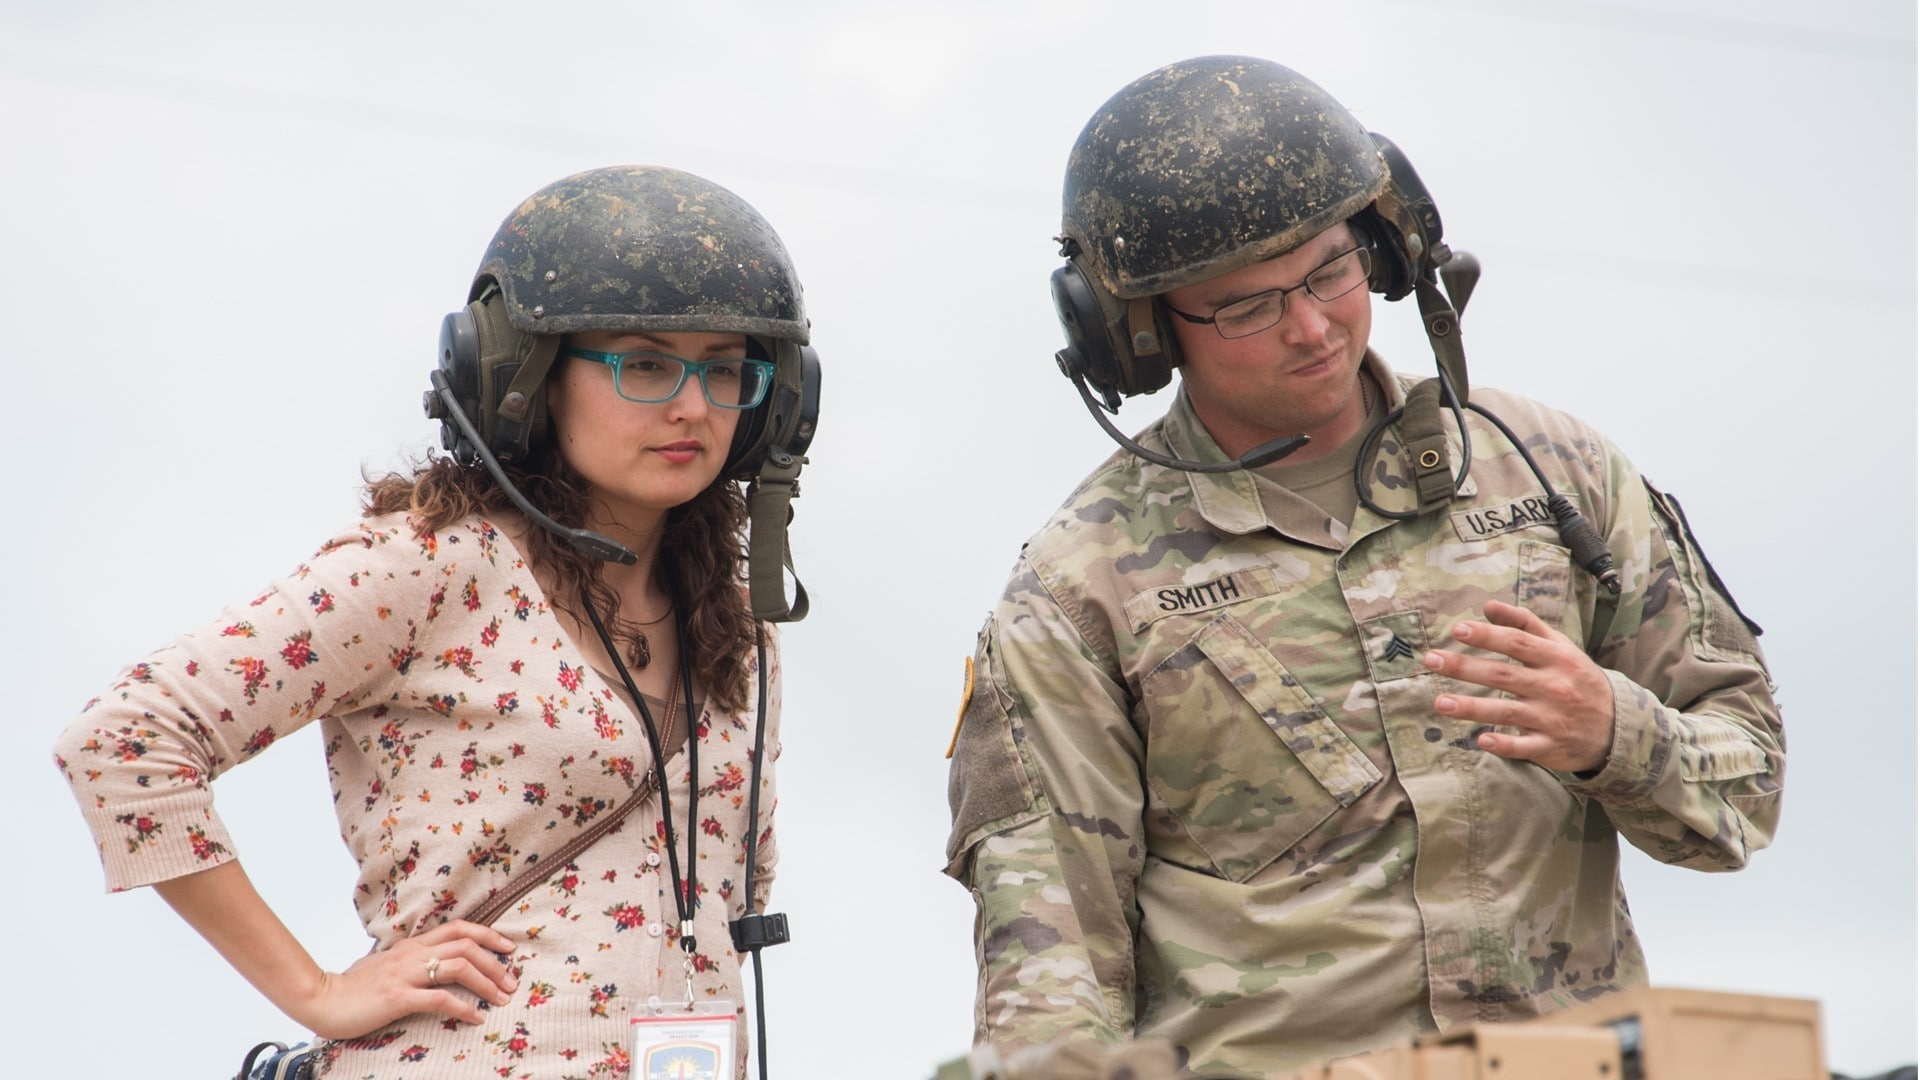 A female civilian with an Army helmet and a Soldier have a discussion on top of a military vehicle.